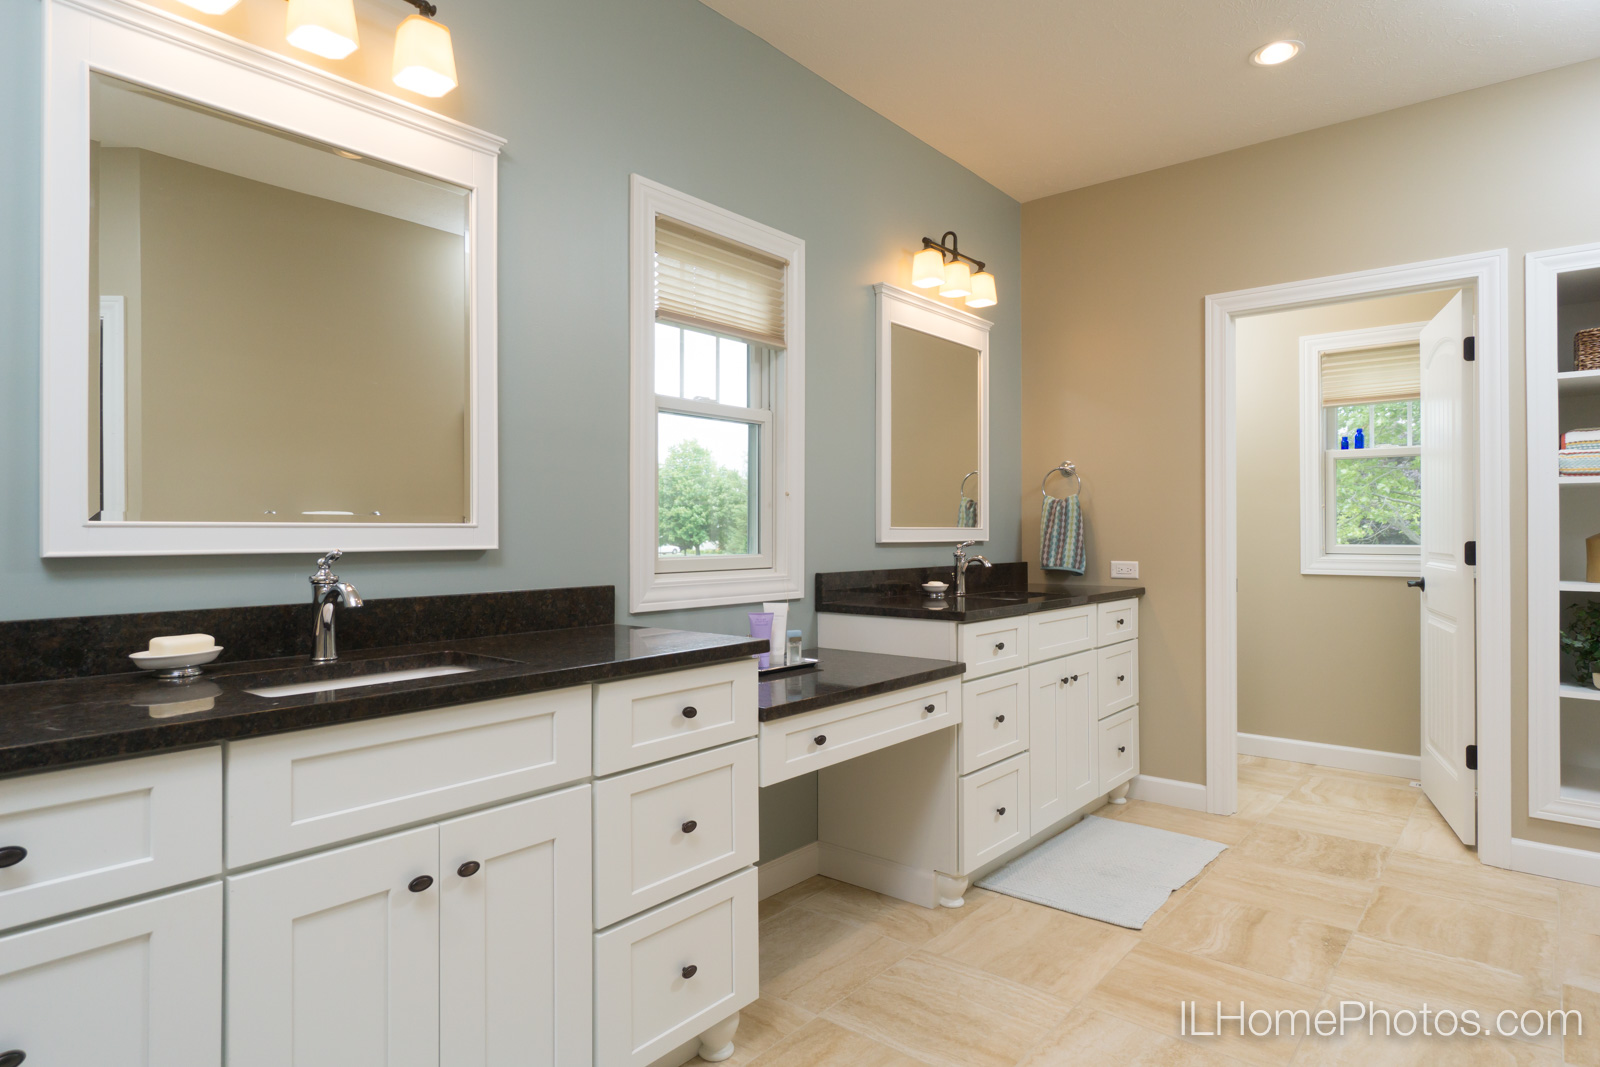 Interior master bathroom photograph for real estate in Springfield, IL :: Illinois Home Photography by Michael Gowin, Lincoln, IL